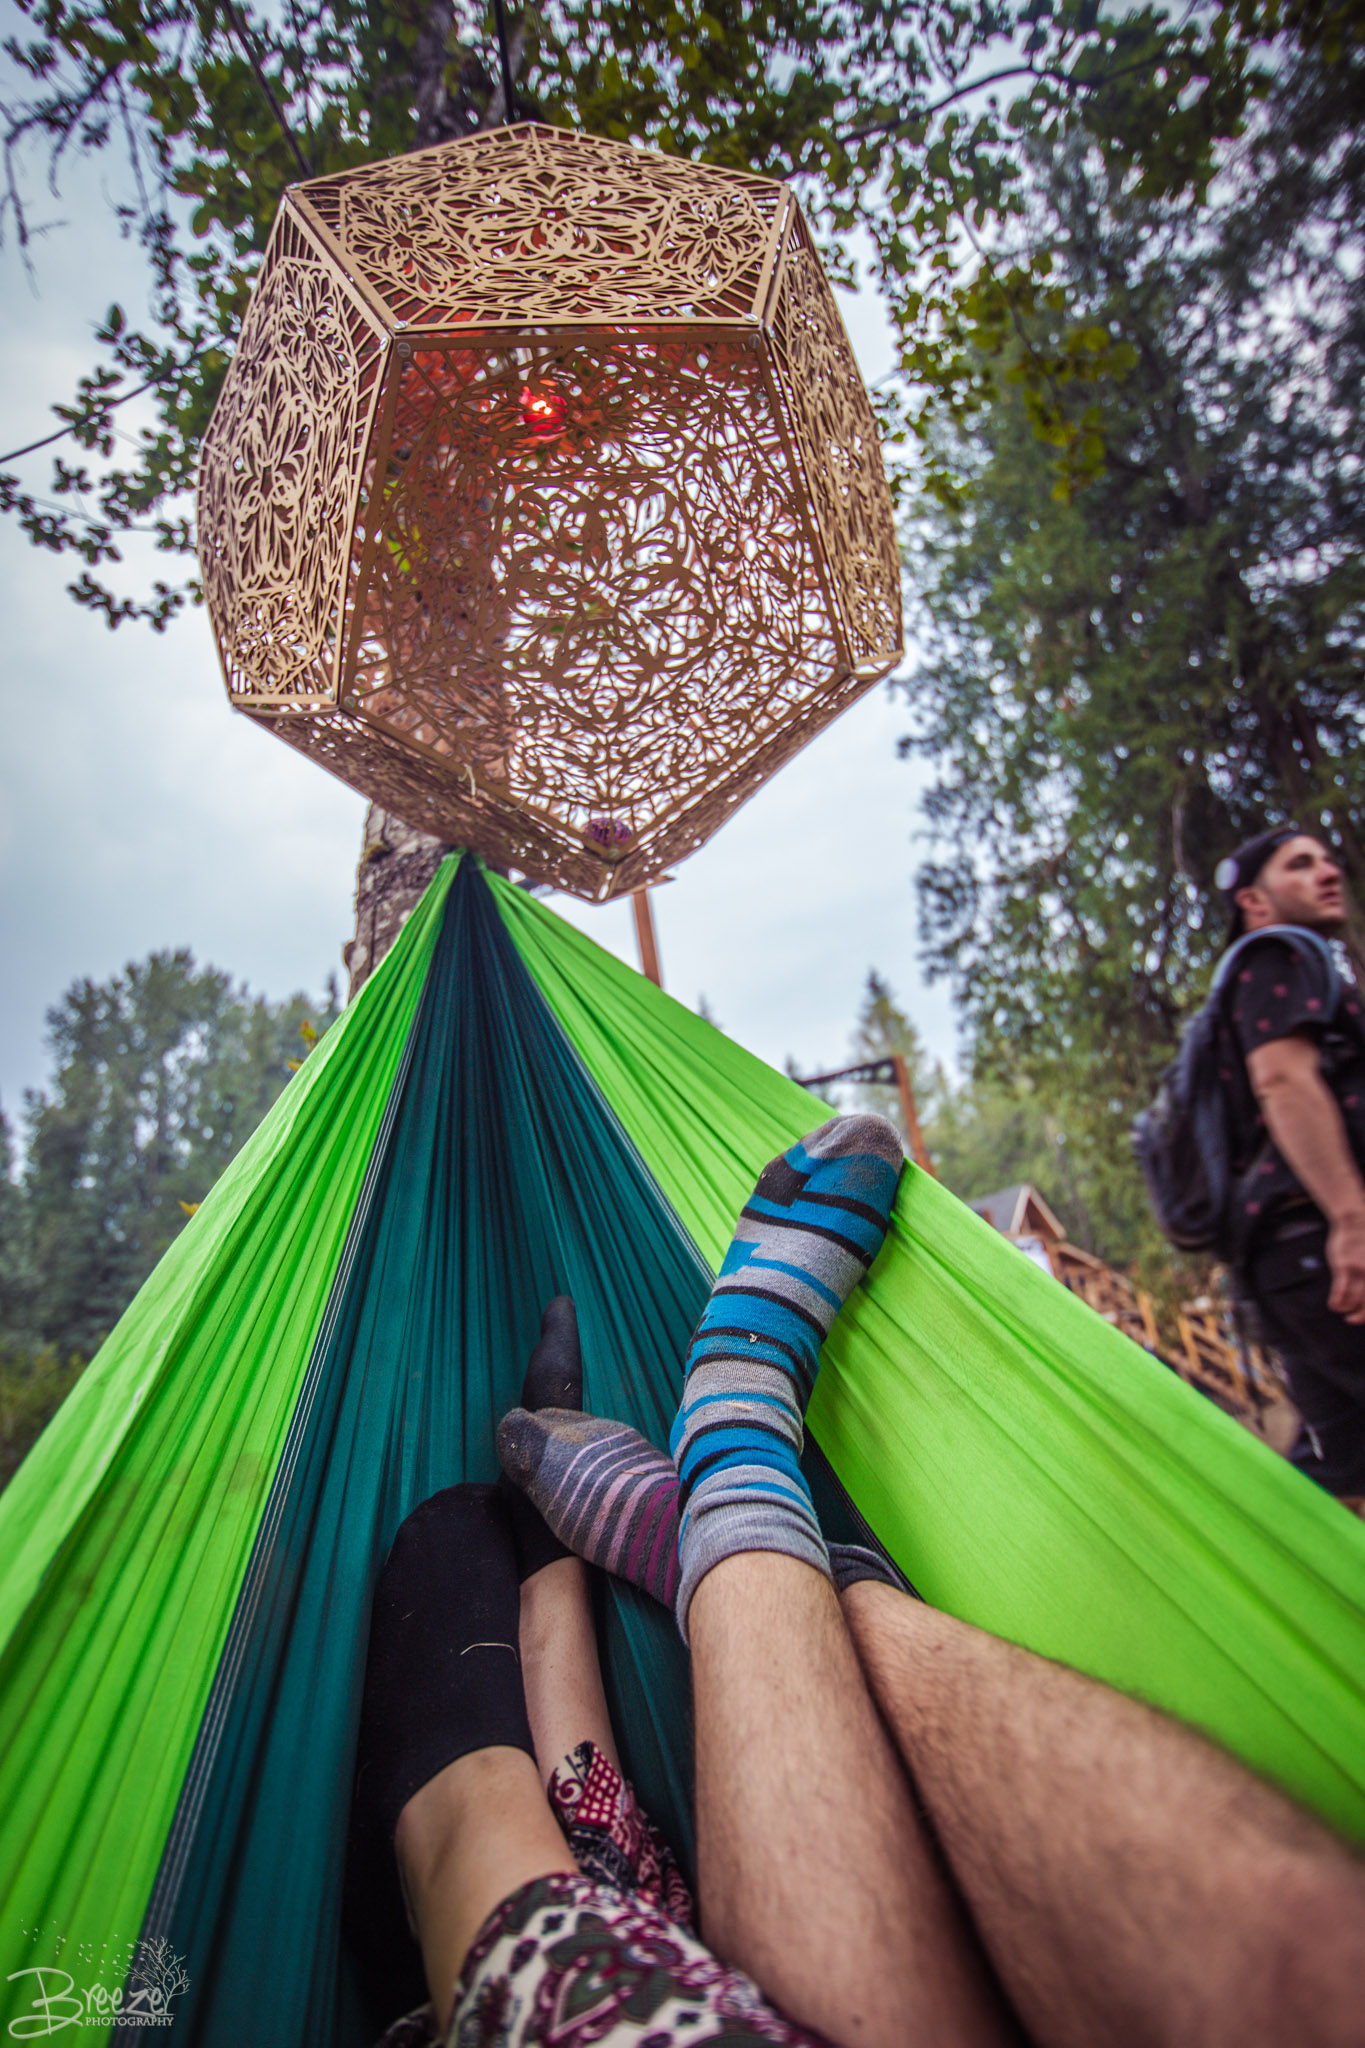 Brie'Ana Breeze Photography & Media - Shambhala 2018-1688.jpg